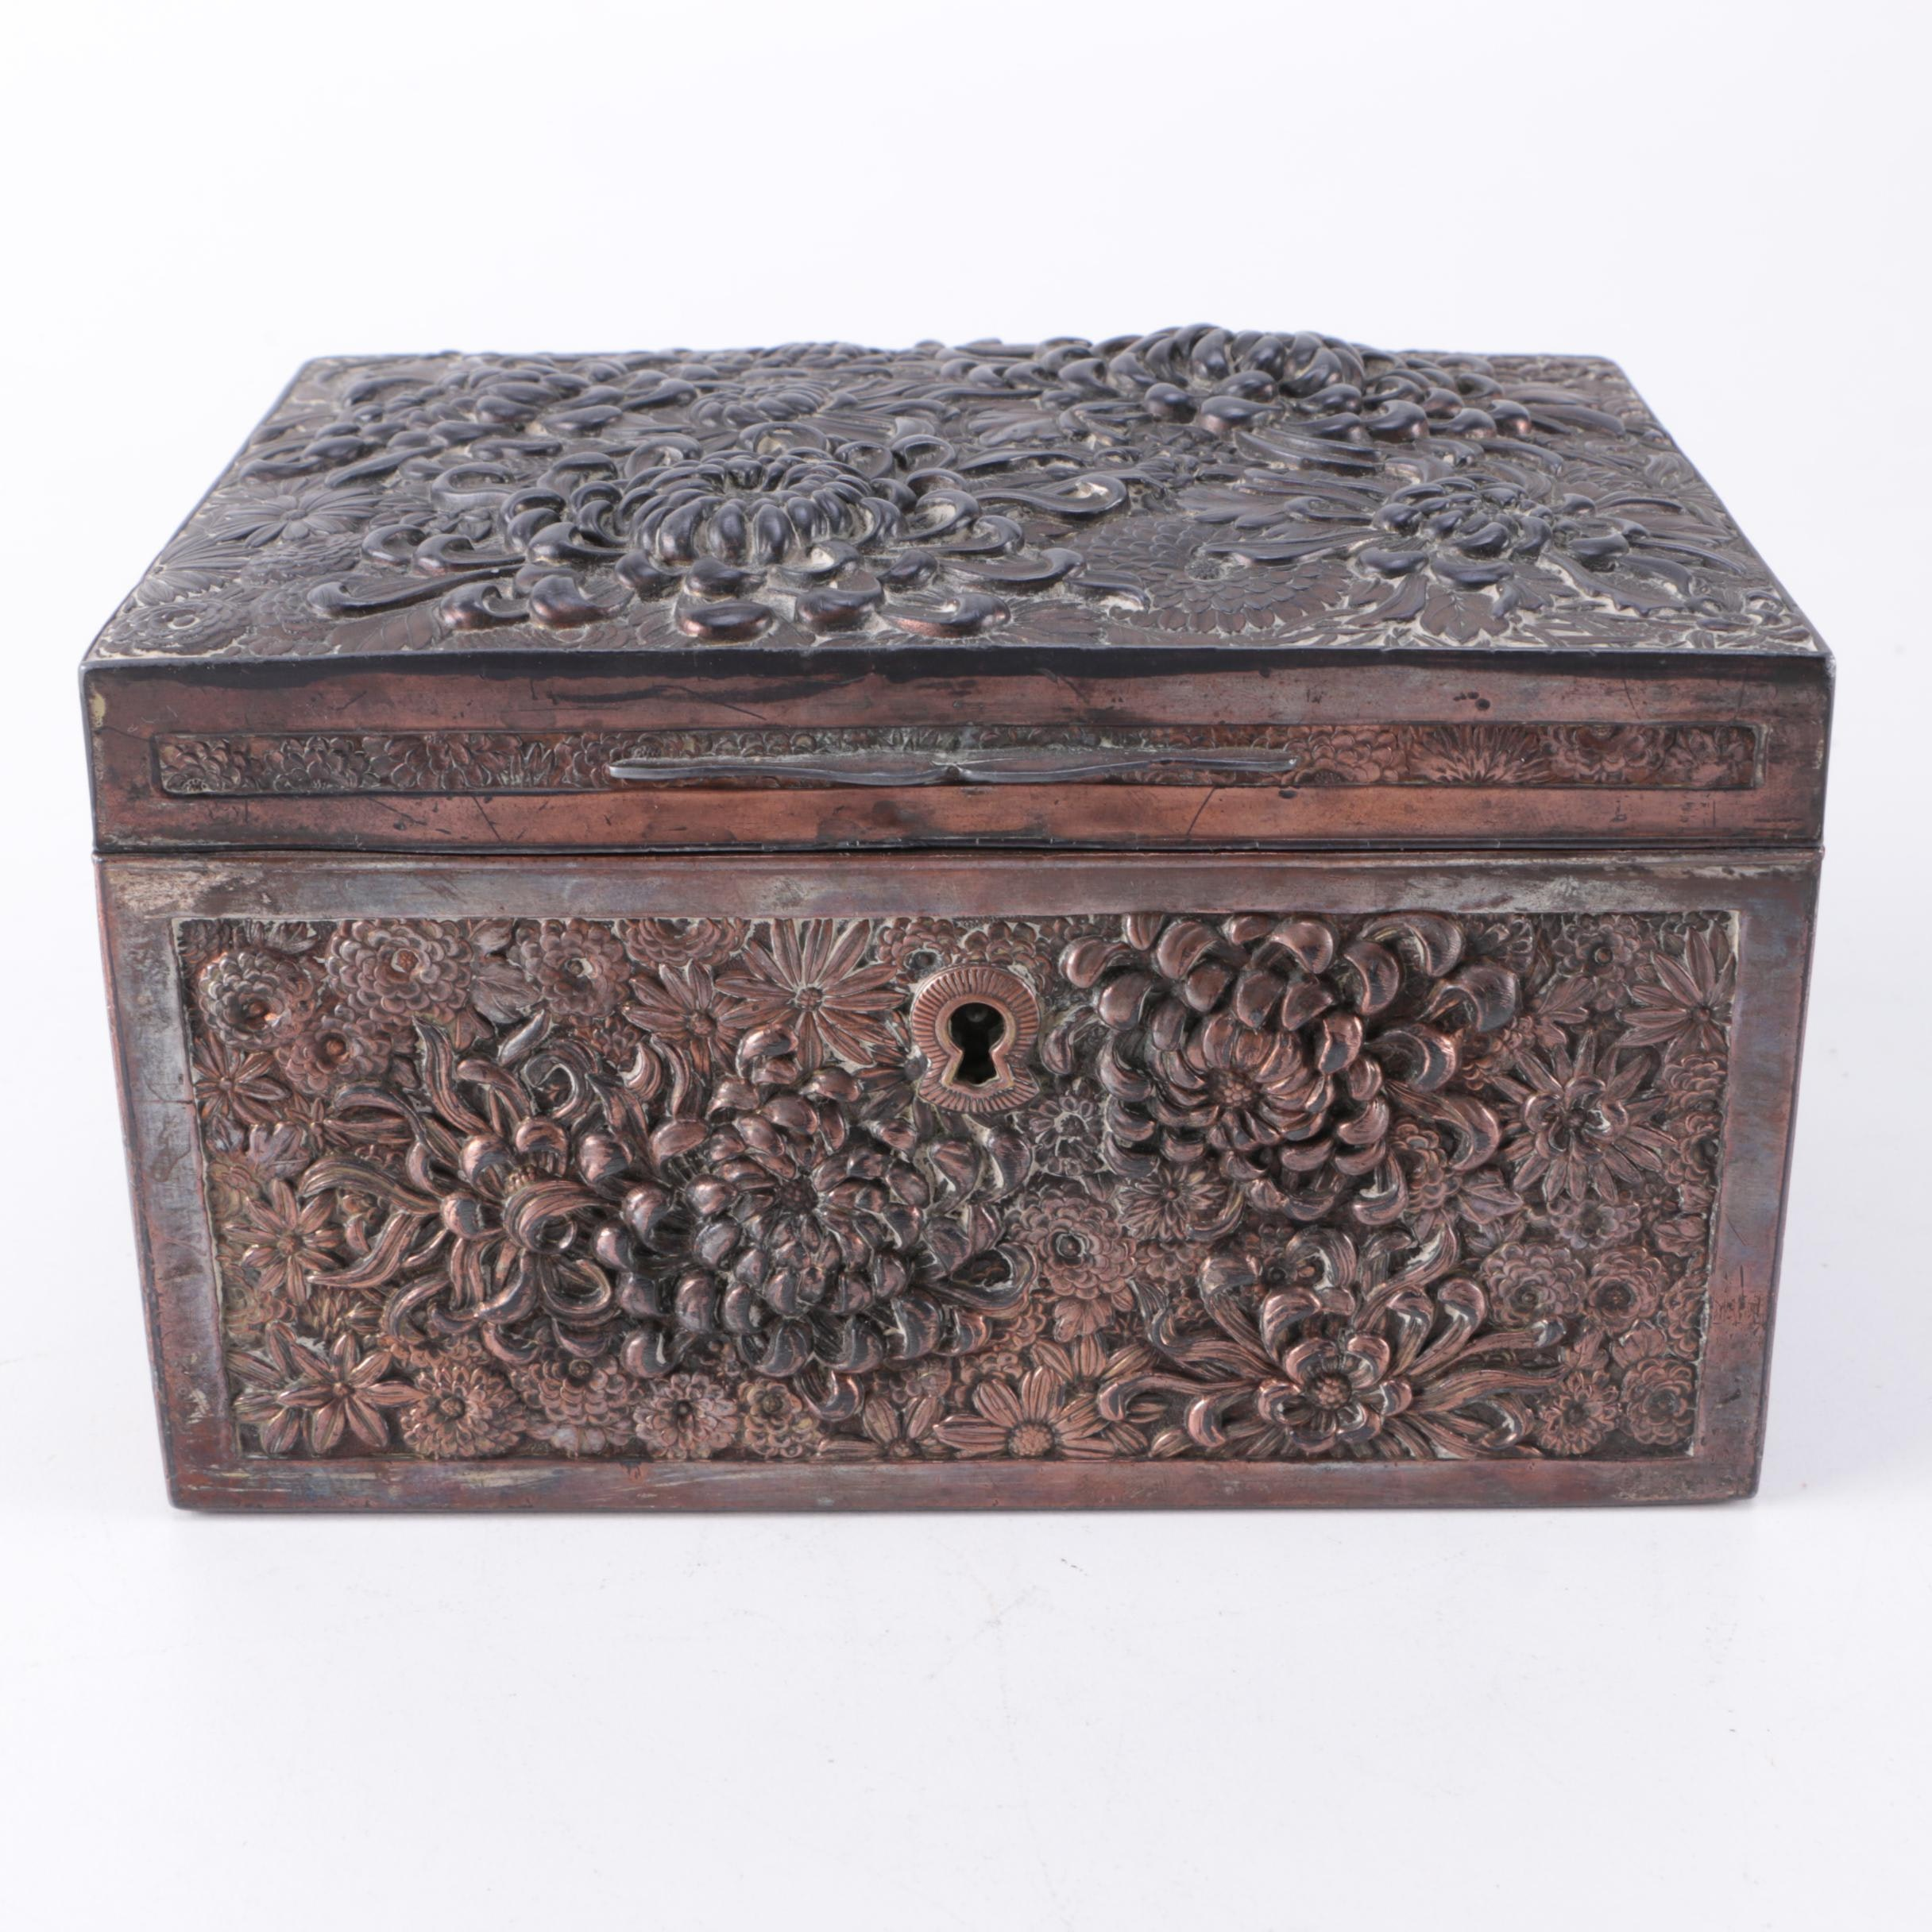 Antique Silver Plated Copper Keepsake Box